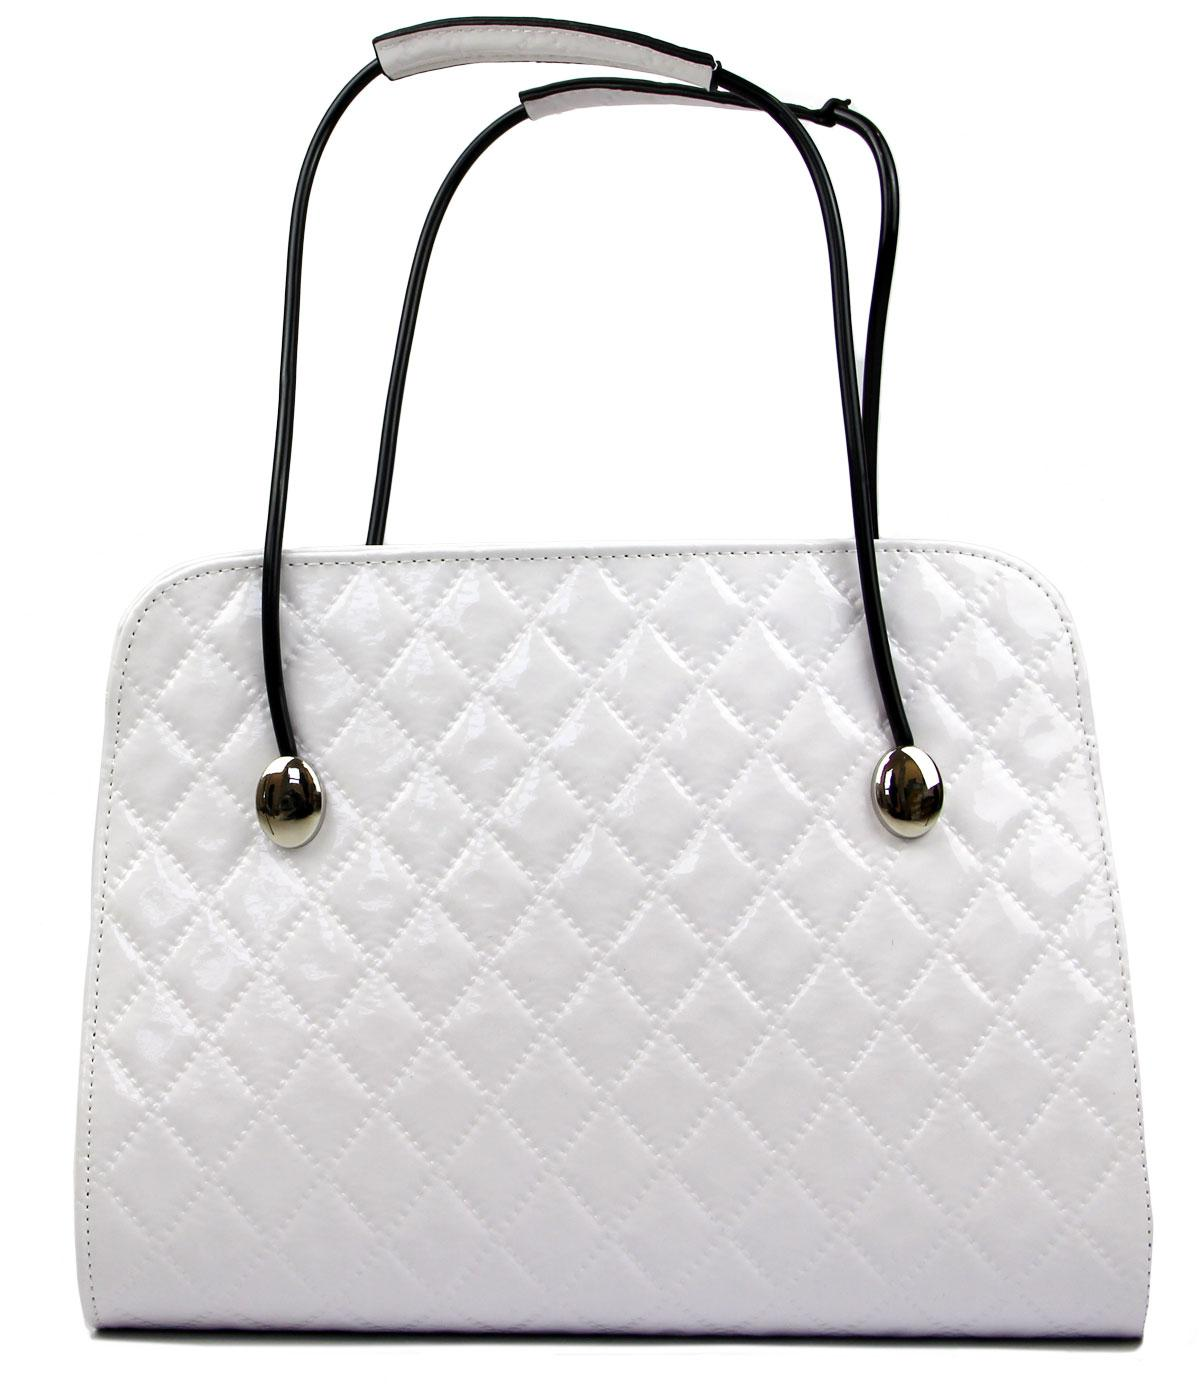 Audrey Tatyana Retro 50s Diamond Stitch Handbag W